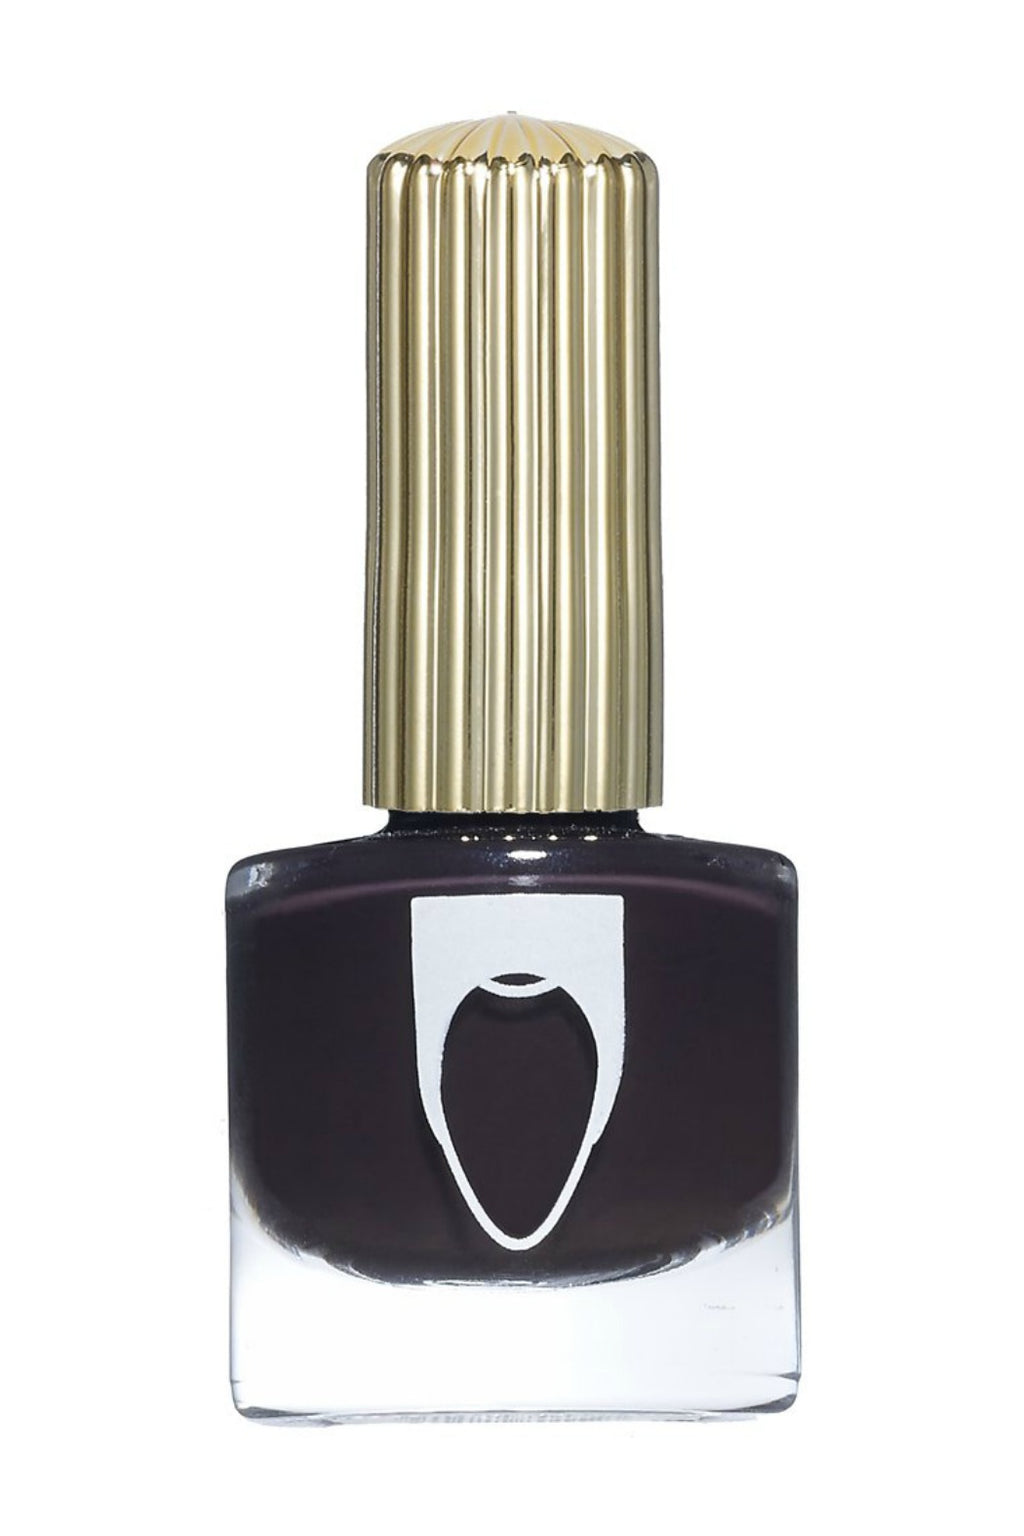 Floss Gloss Nail Lacquer - Party Bruise